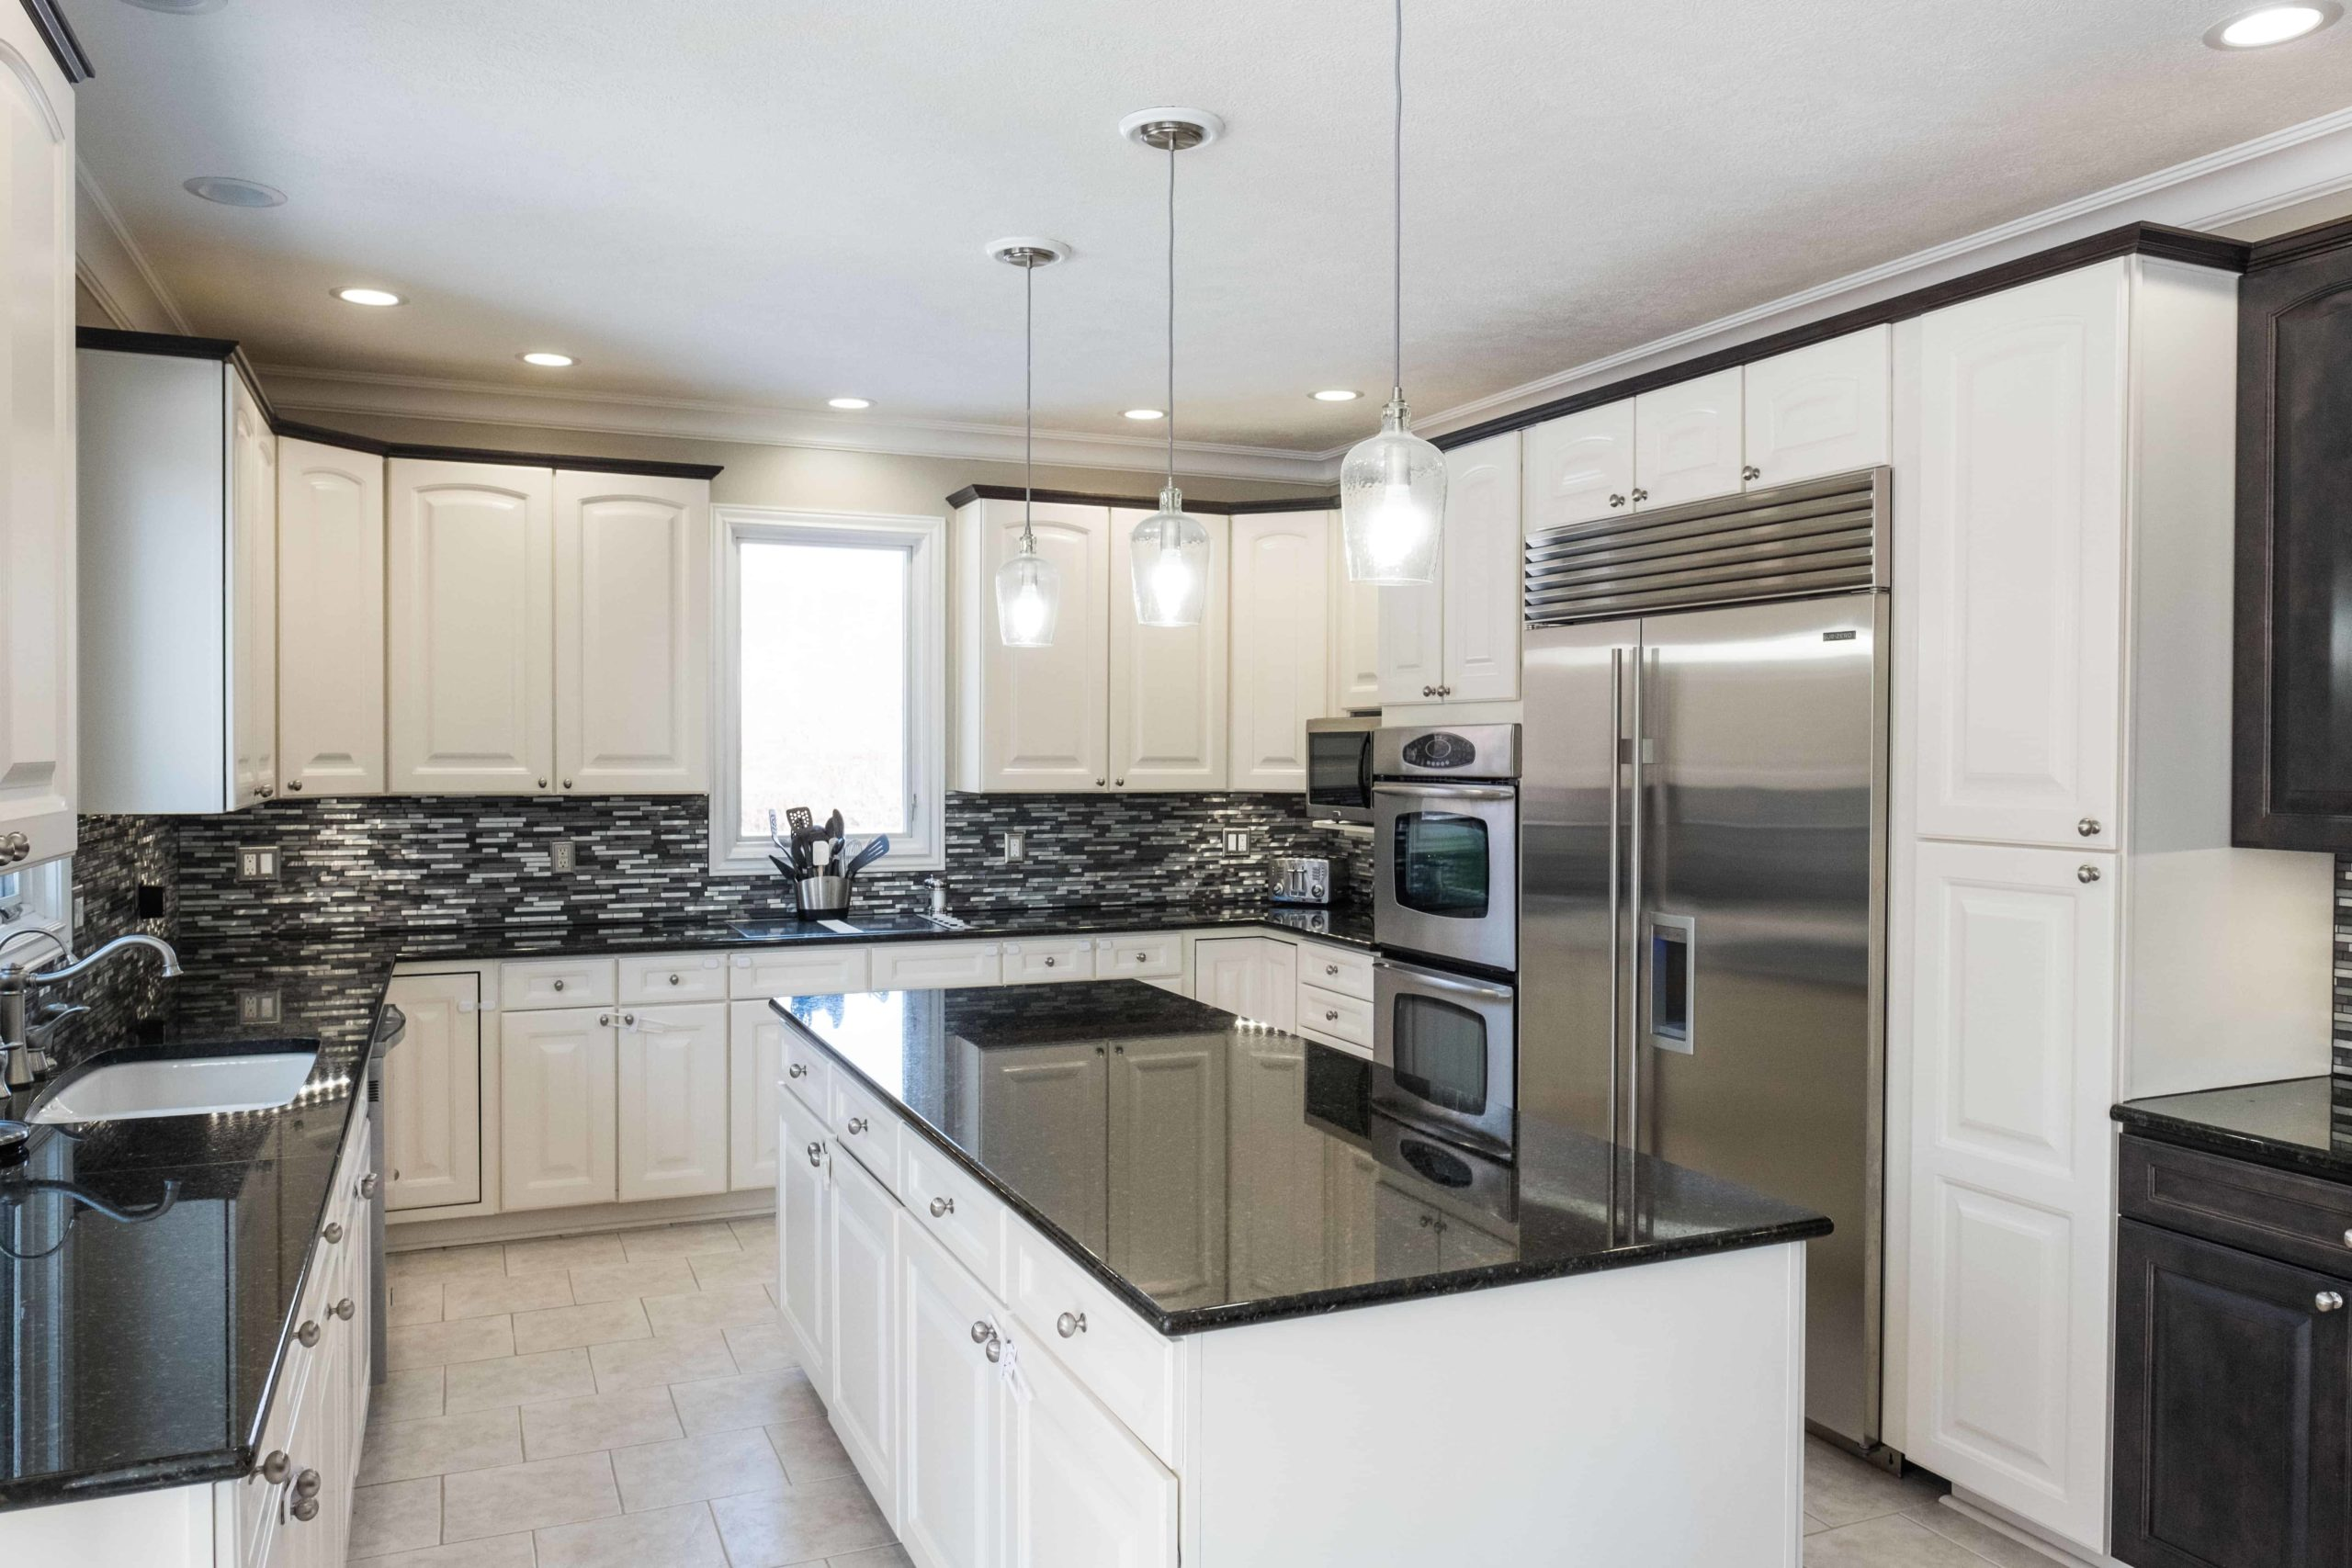 Greater Lansing Area Kitchen Remodeling: Considering Kitchen Design ...